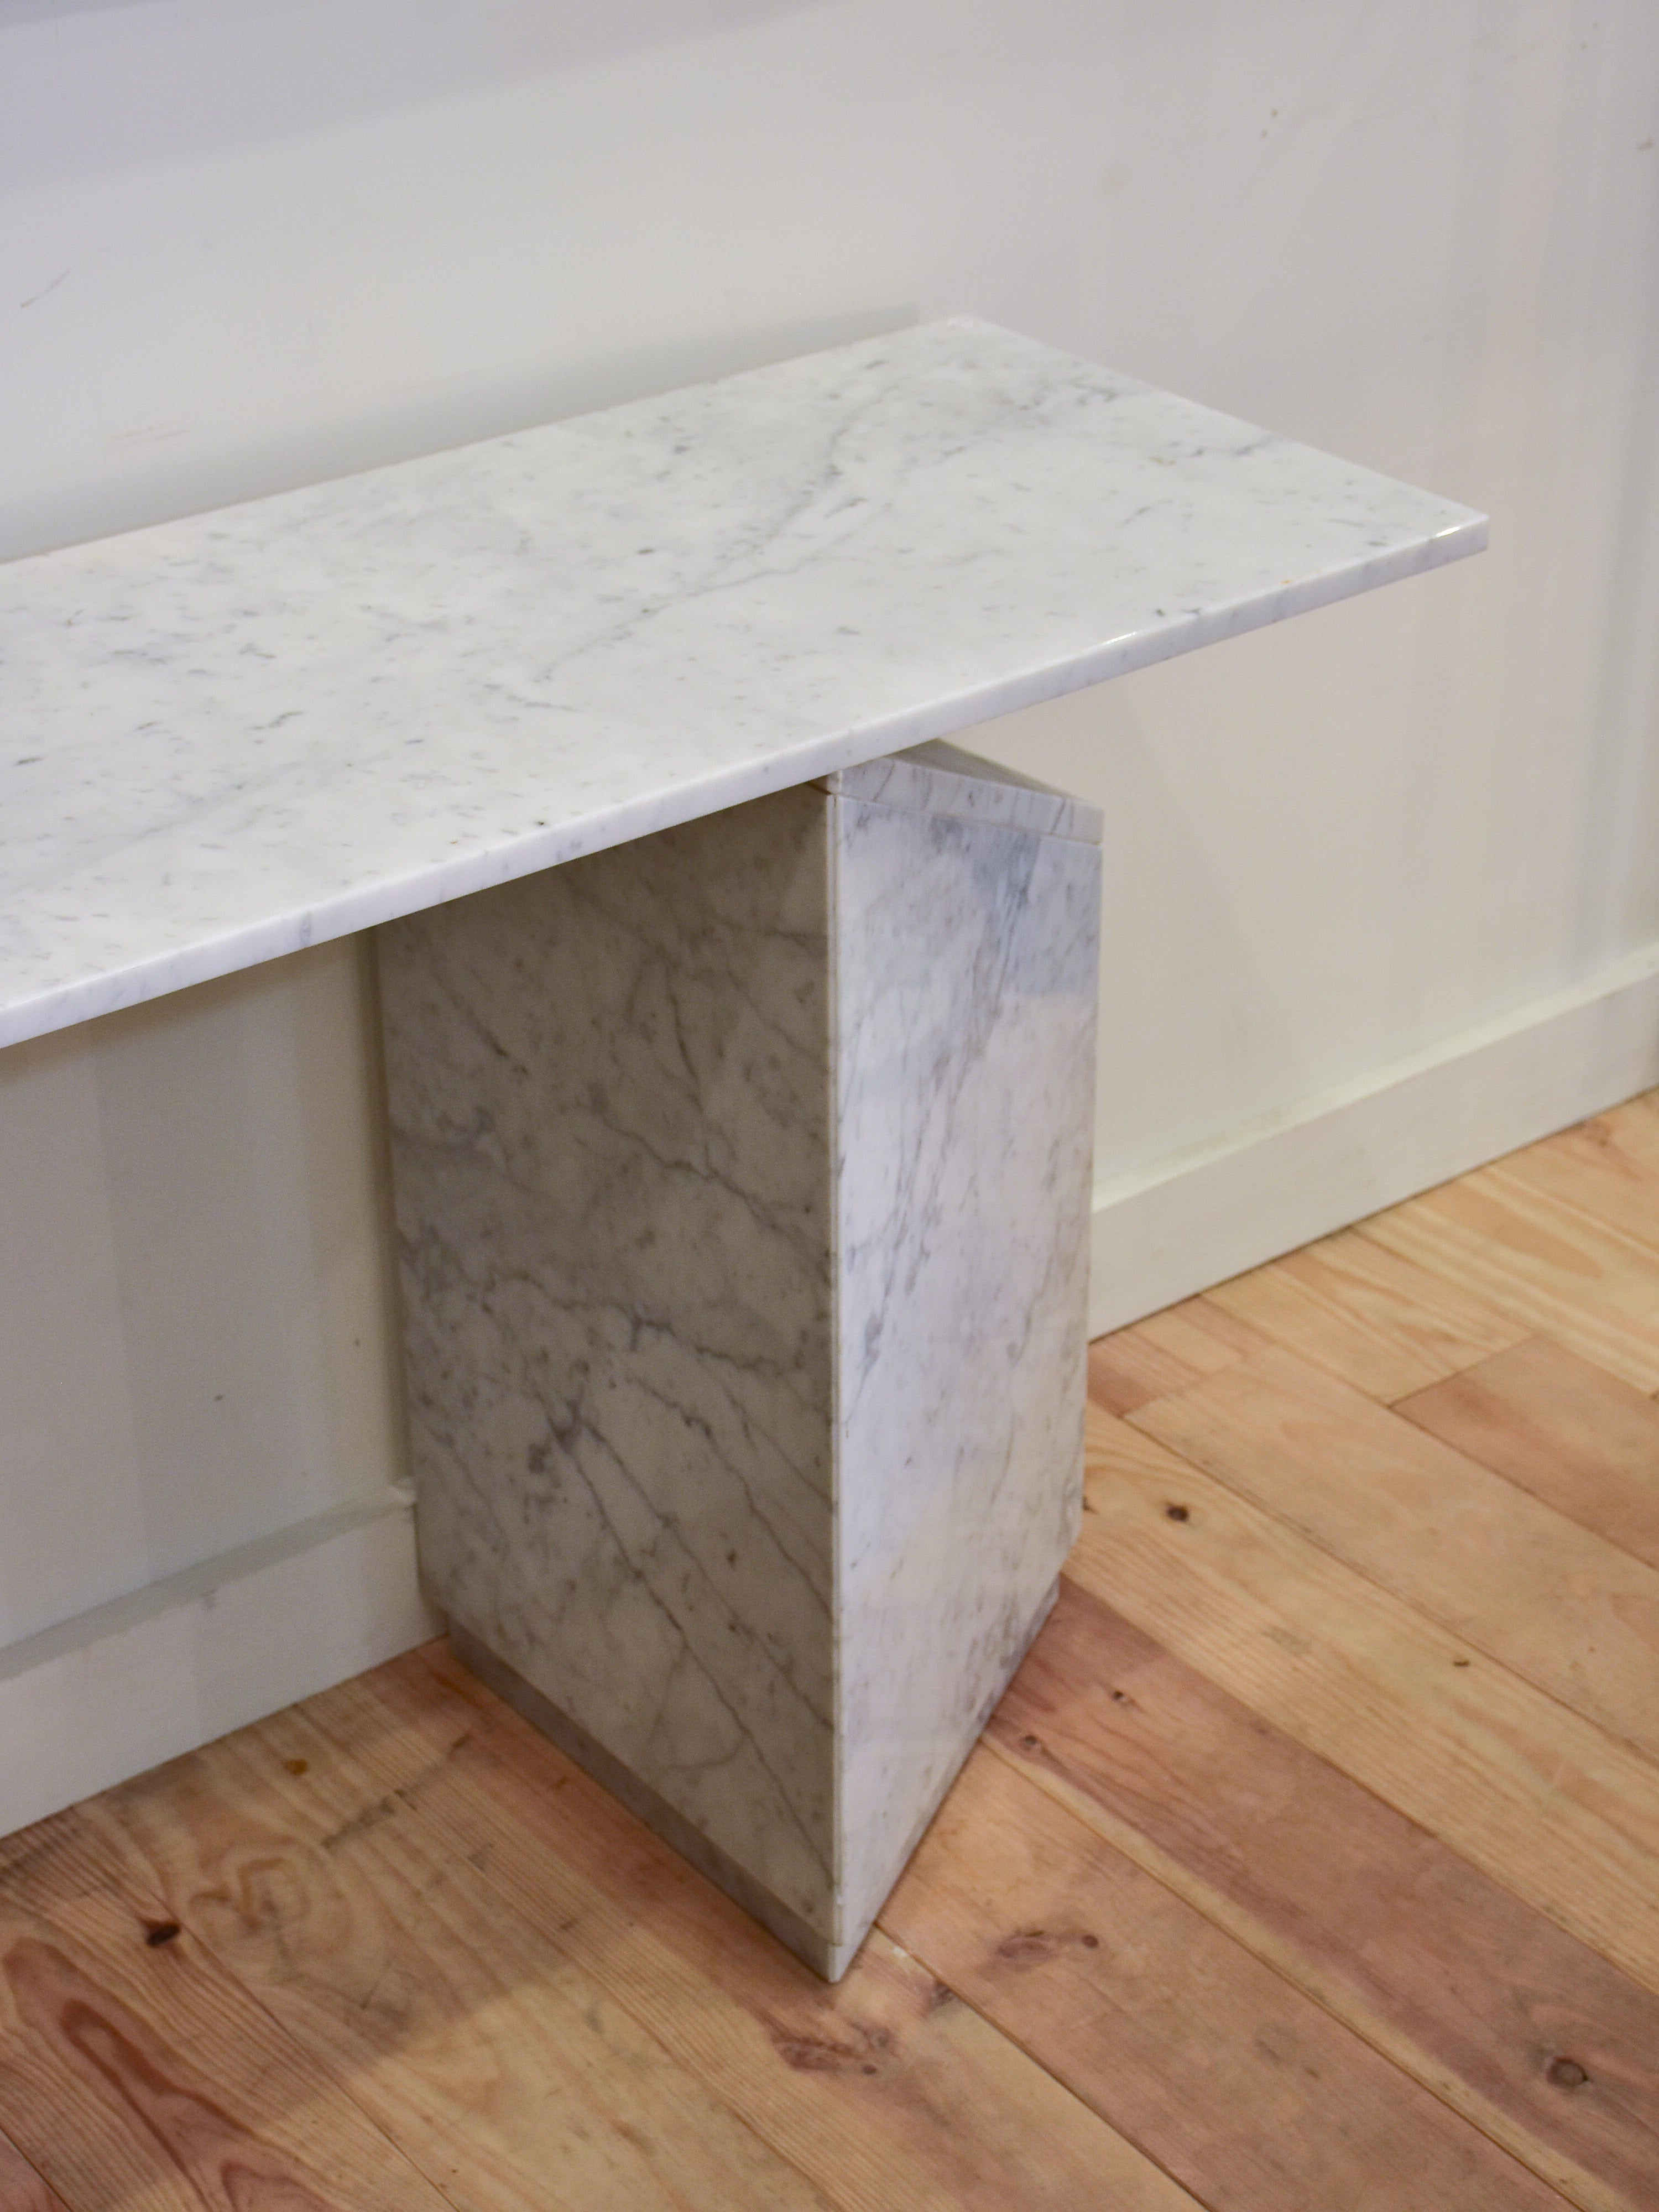 Vintage white marble console table with triangular legs